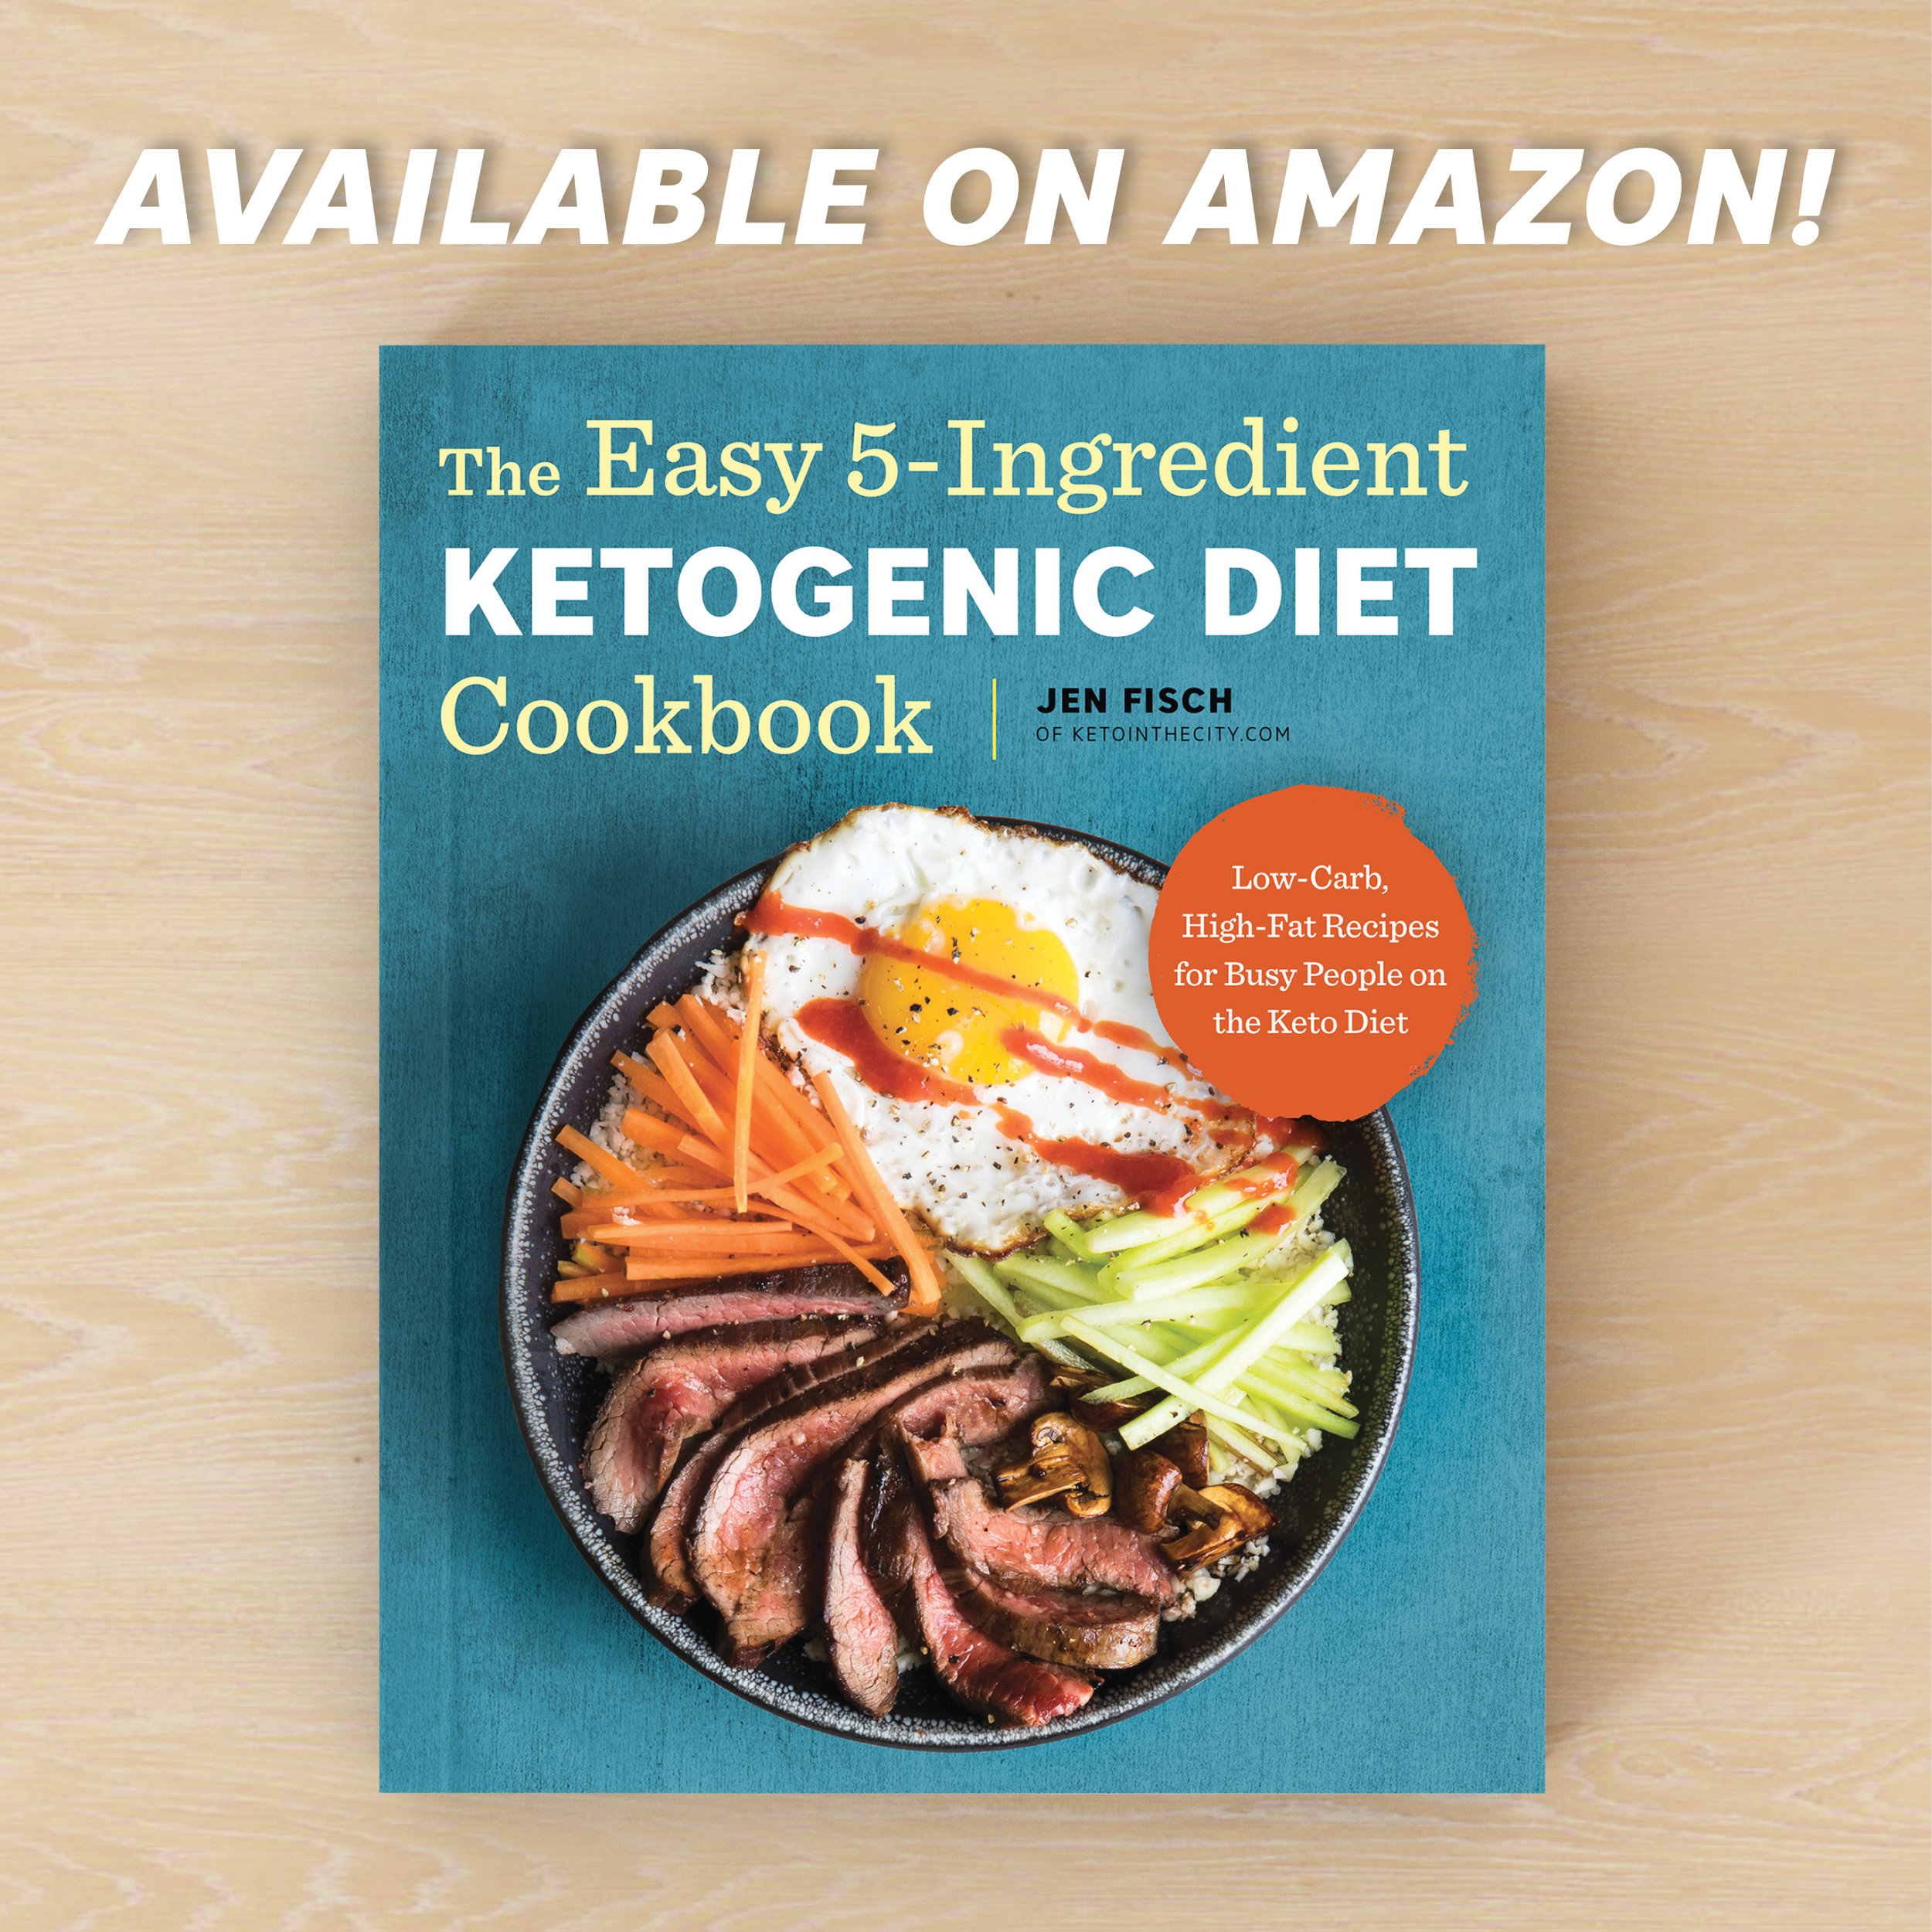 my book- Keto in the city